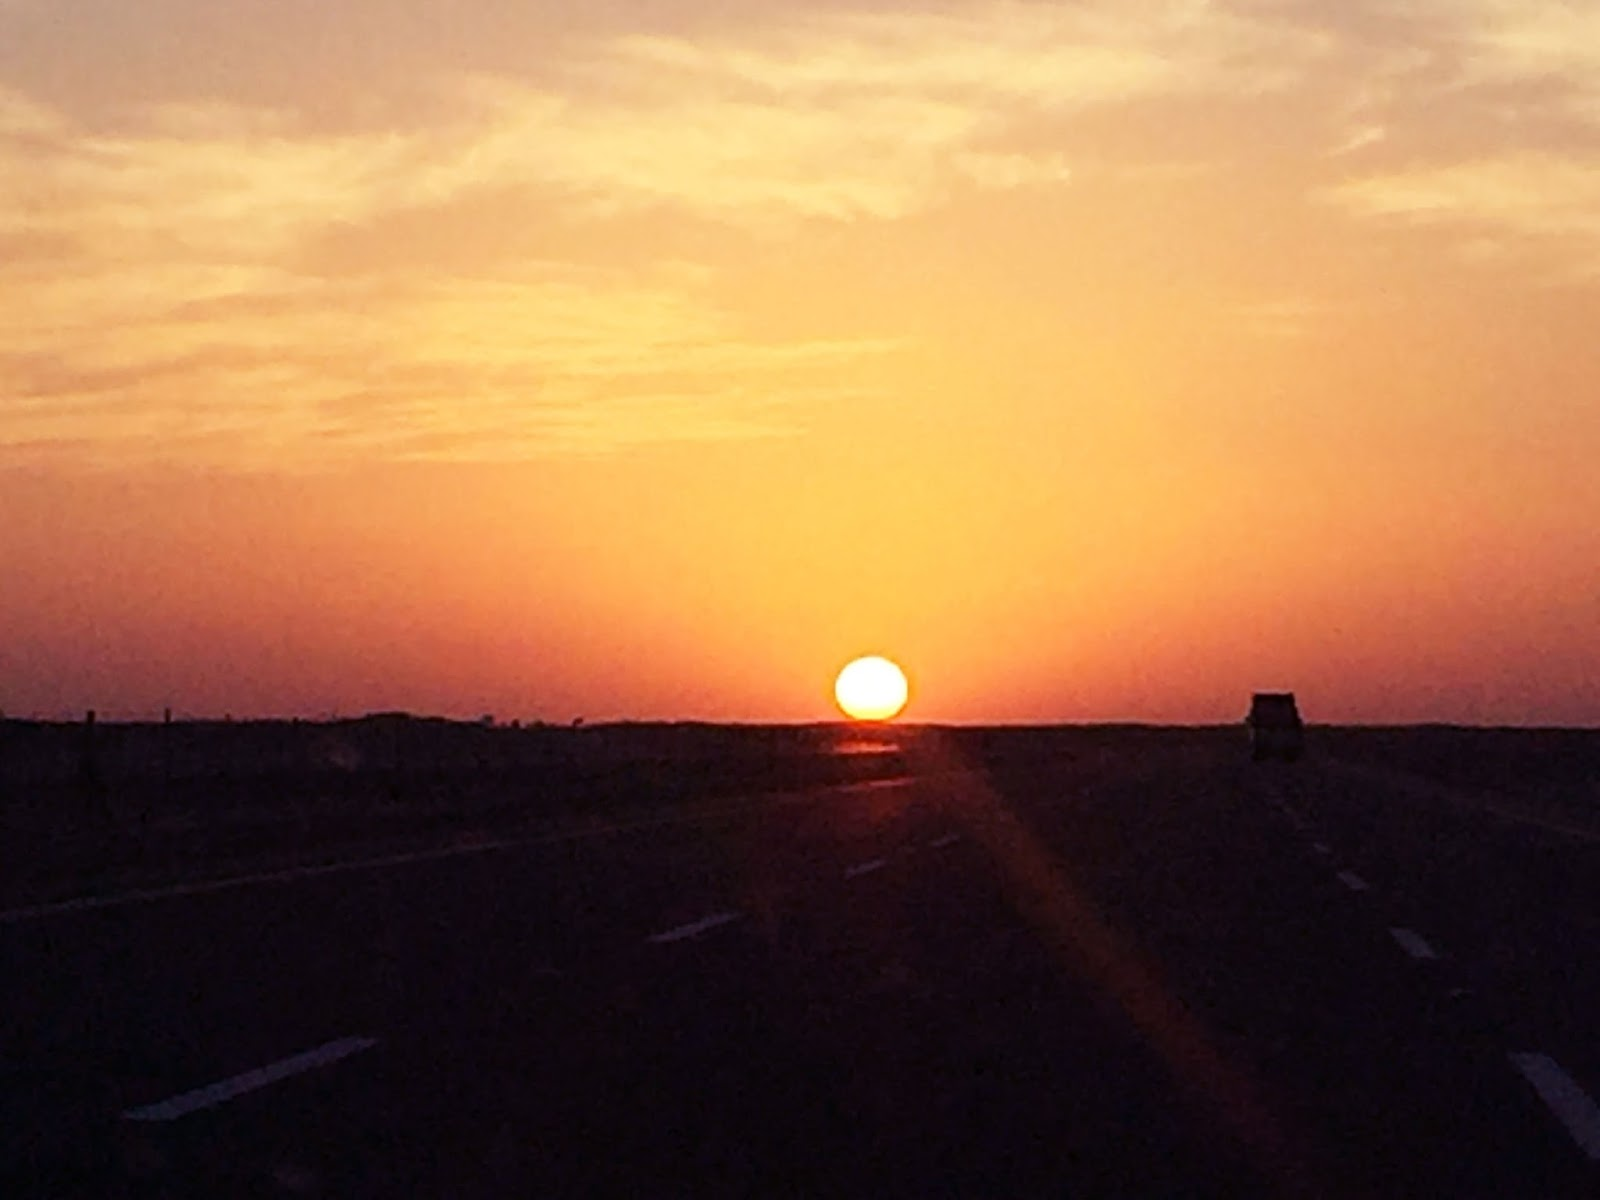 Sunset in Riyadh